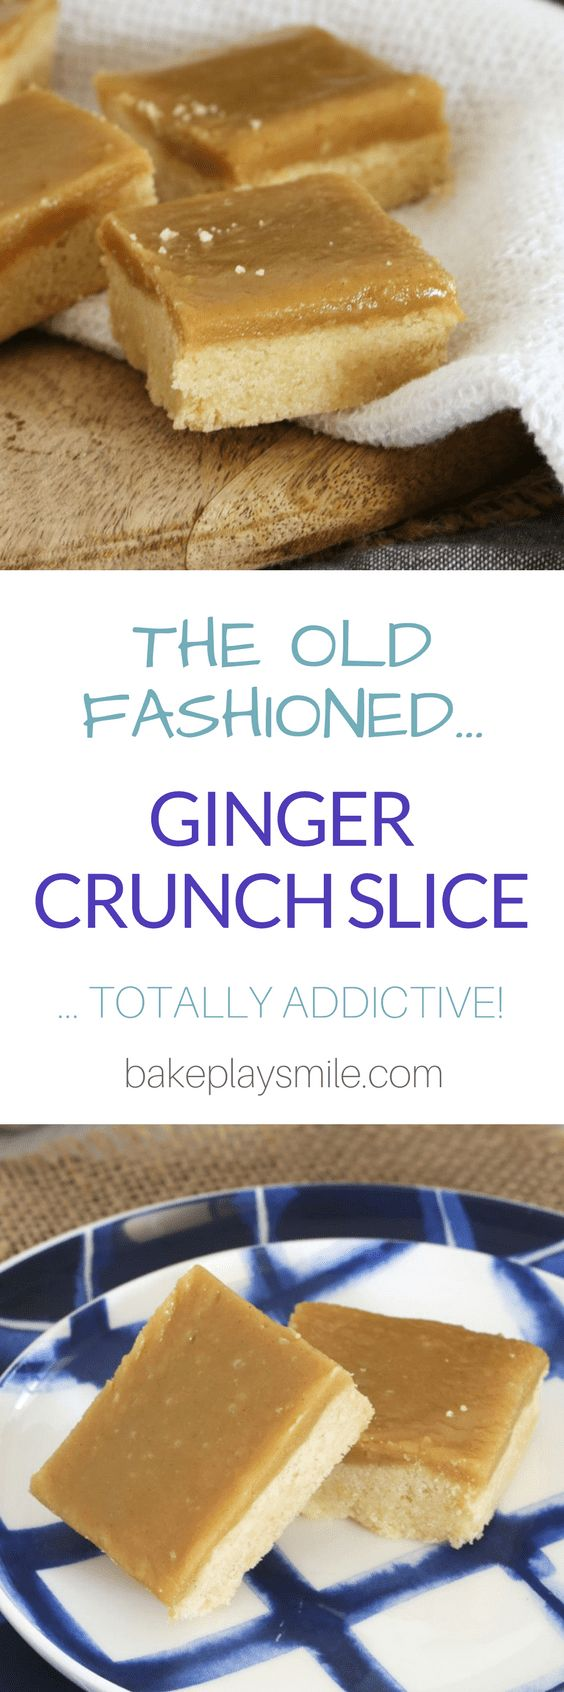 The best GINGER CRUNCH SLICE recipe ever!!!!! Buttery shortbread base with a delicious ginger icing... YUM! #ginger #crunch #classic #shortbread #slice #bars #recipe #easy #conventional #thermomix #video